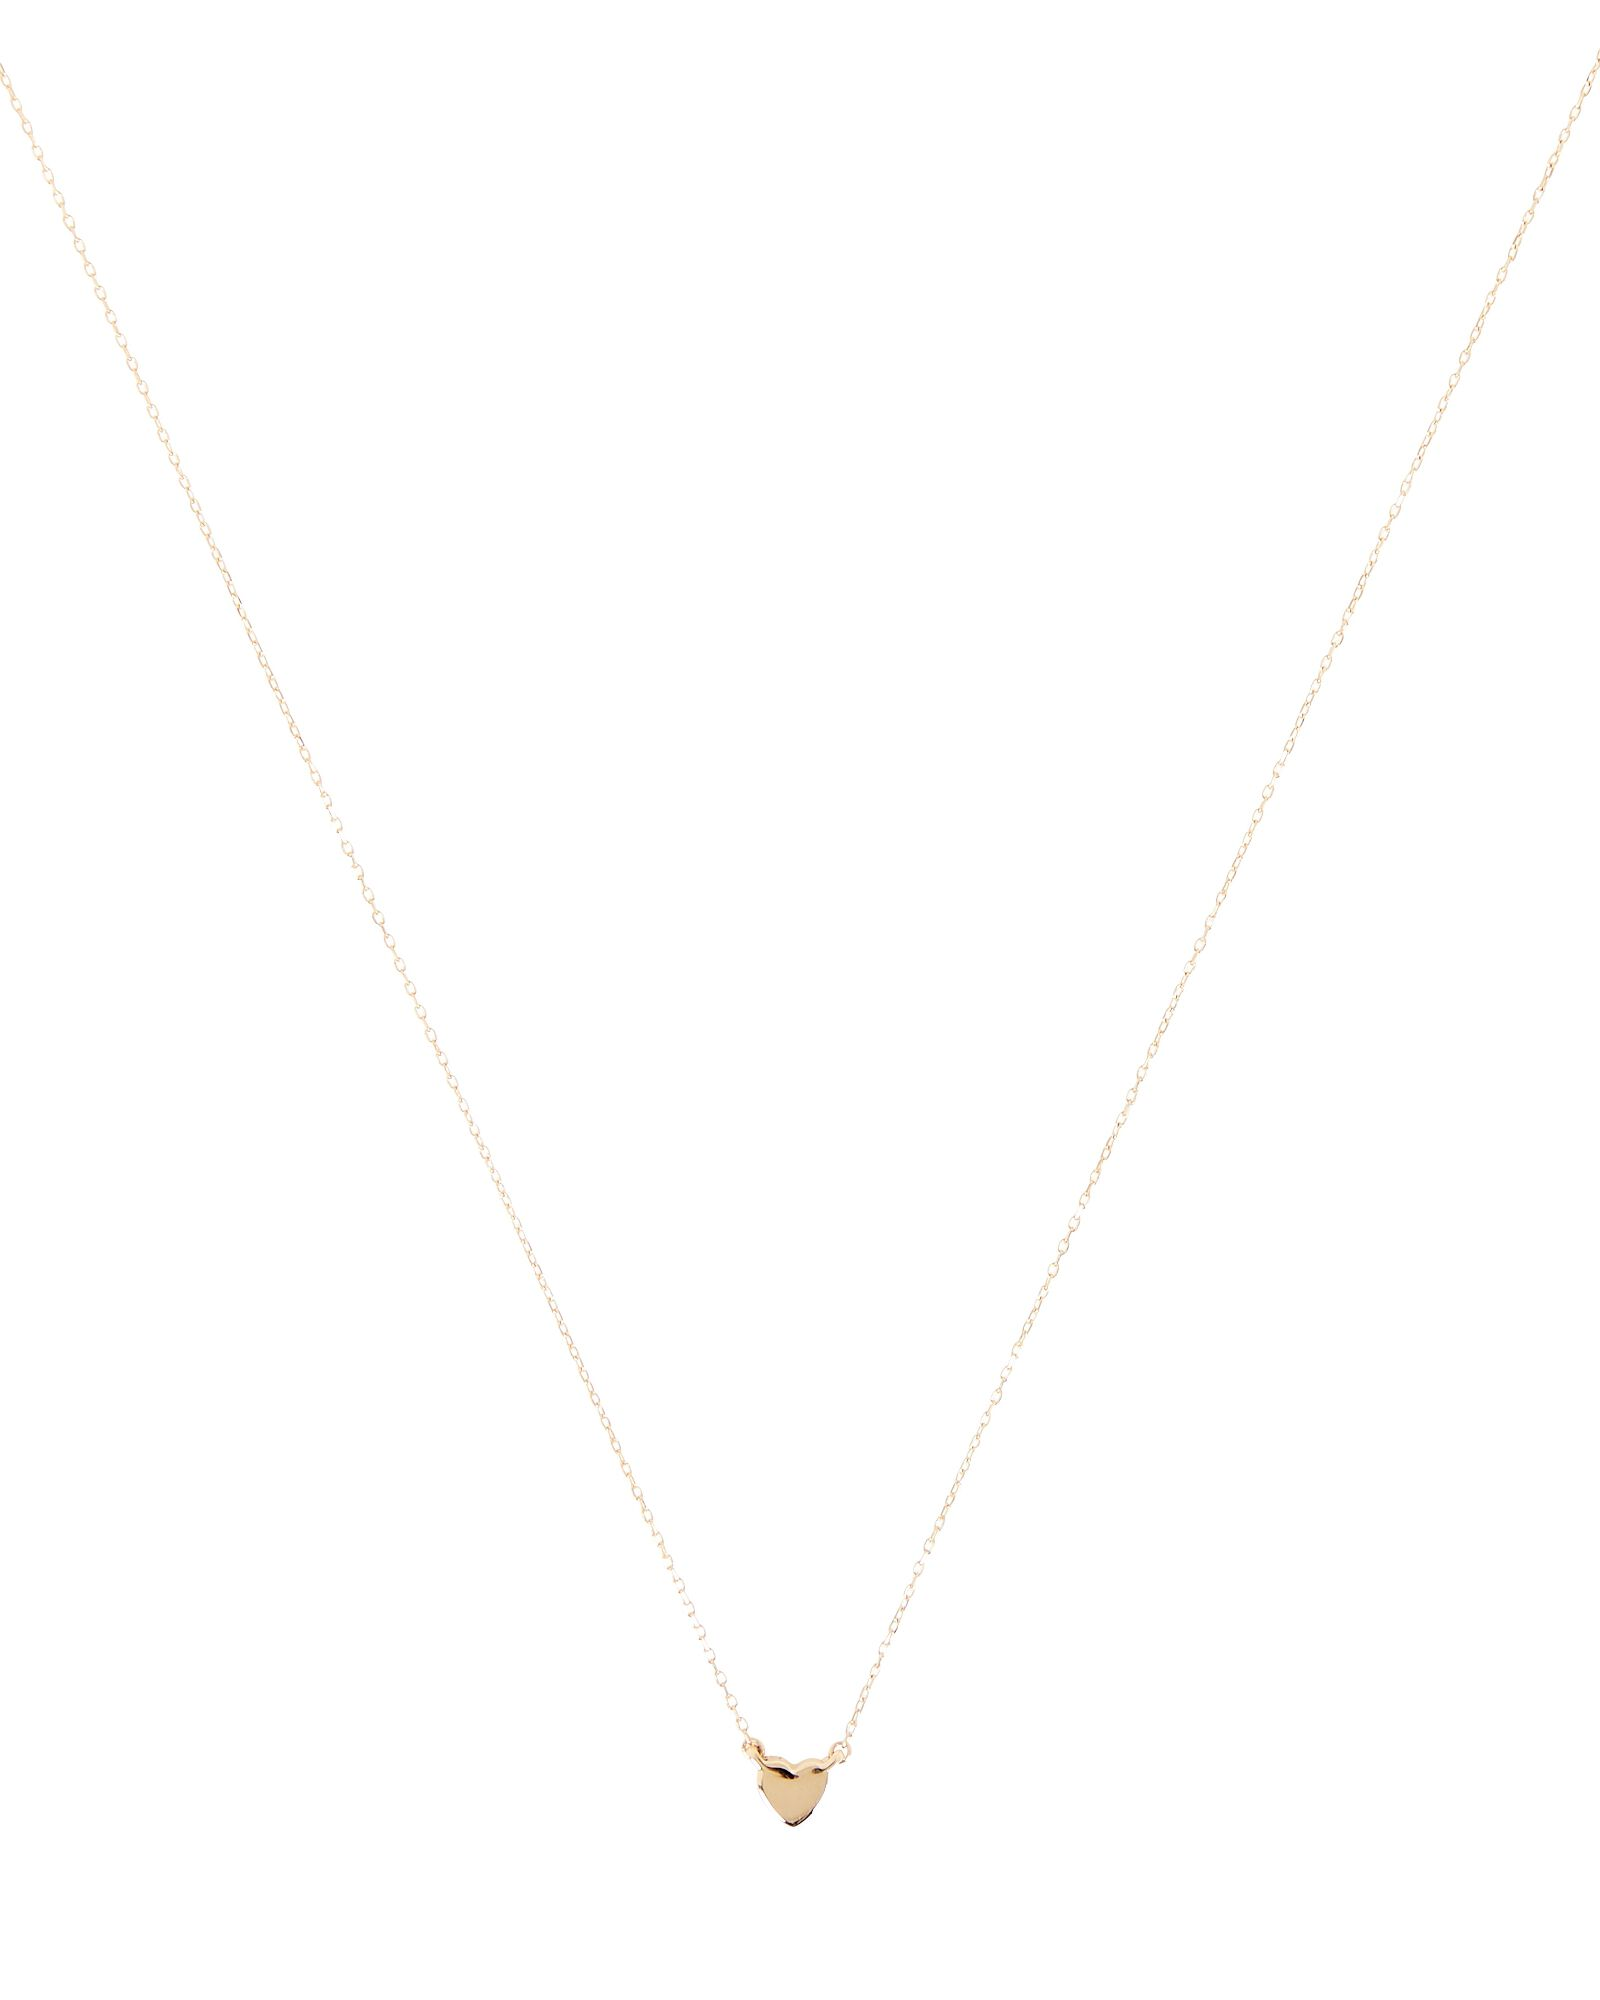 Super Tiny Puffy Heart Necklace, GOLD, hi-res